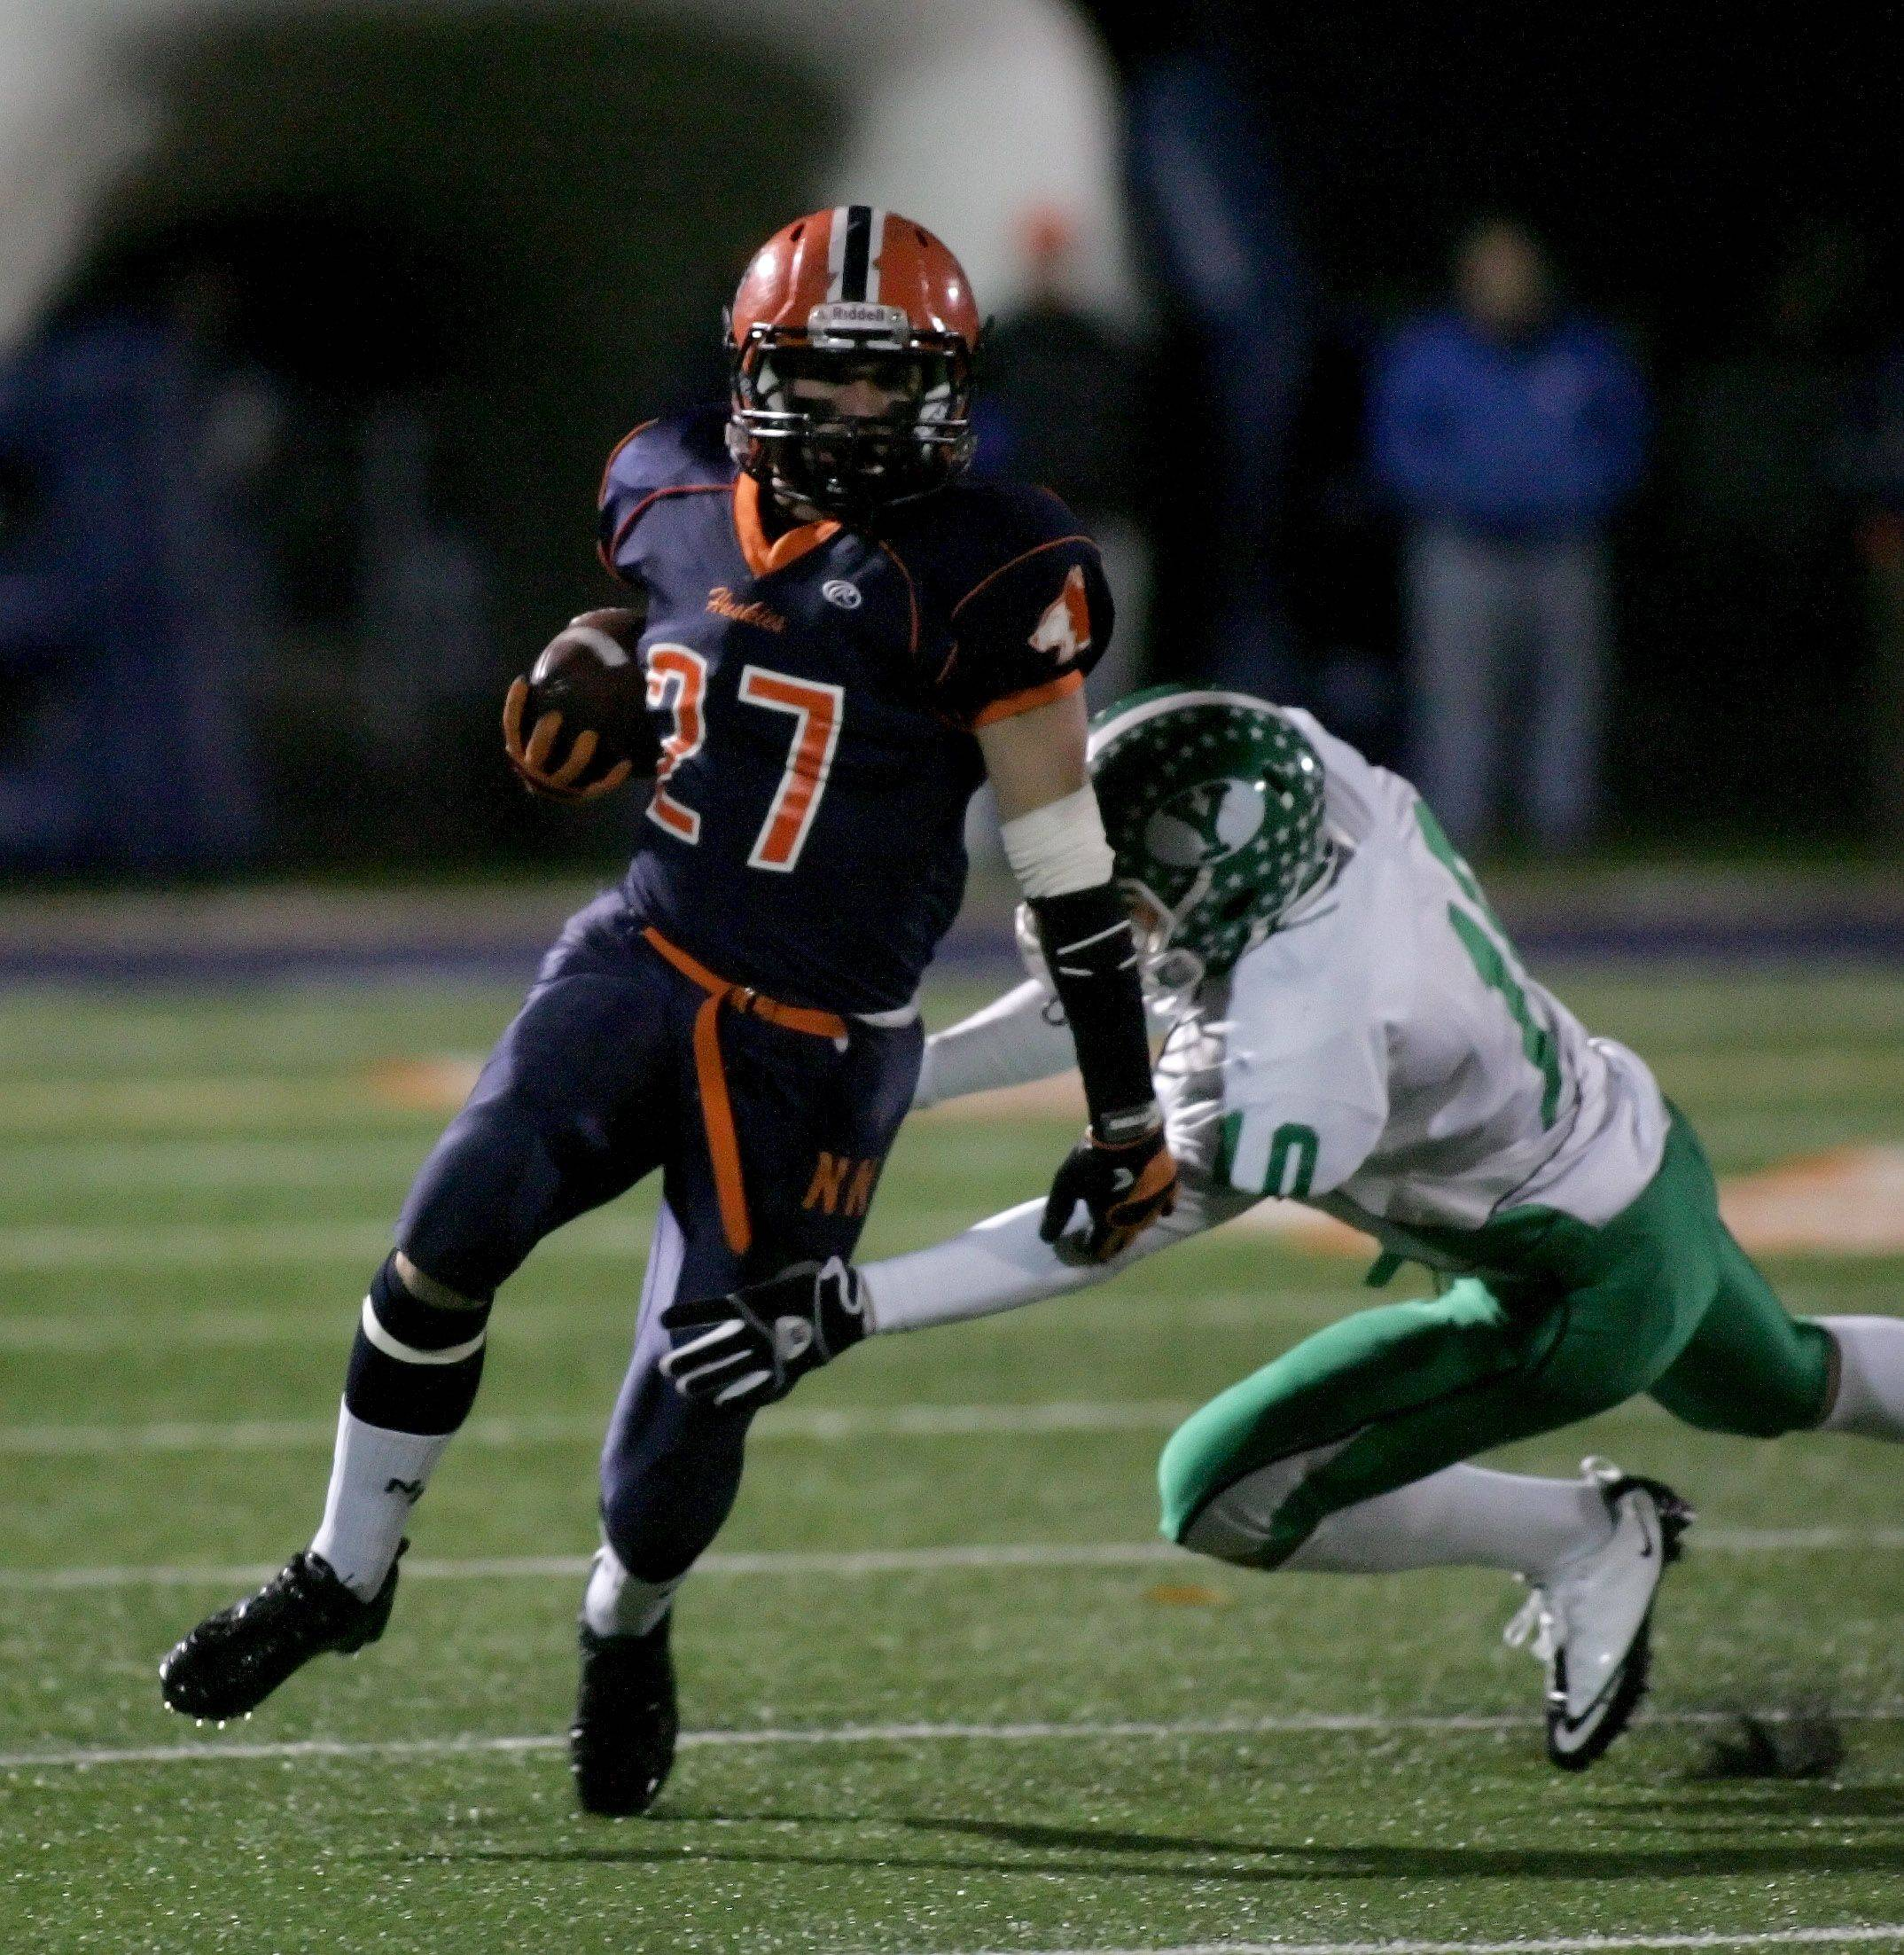 Alex Alicea of Naperville North, left, gets by Peter Kuchan of York.